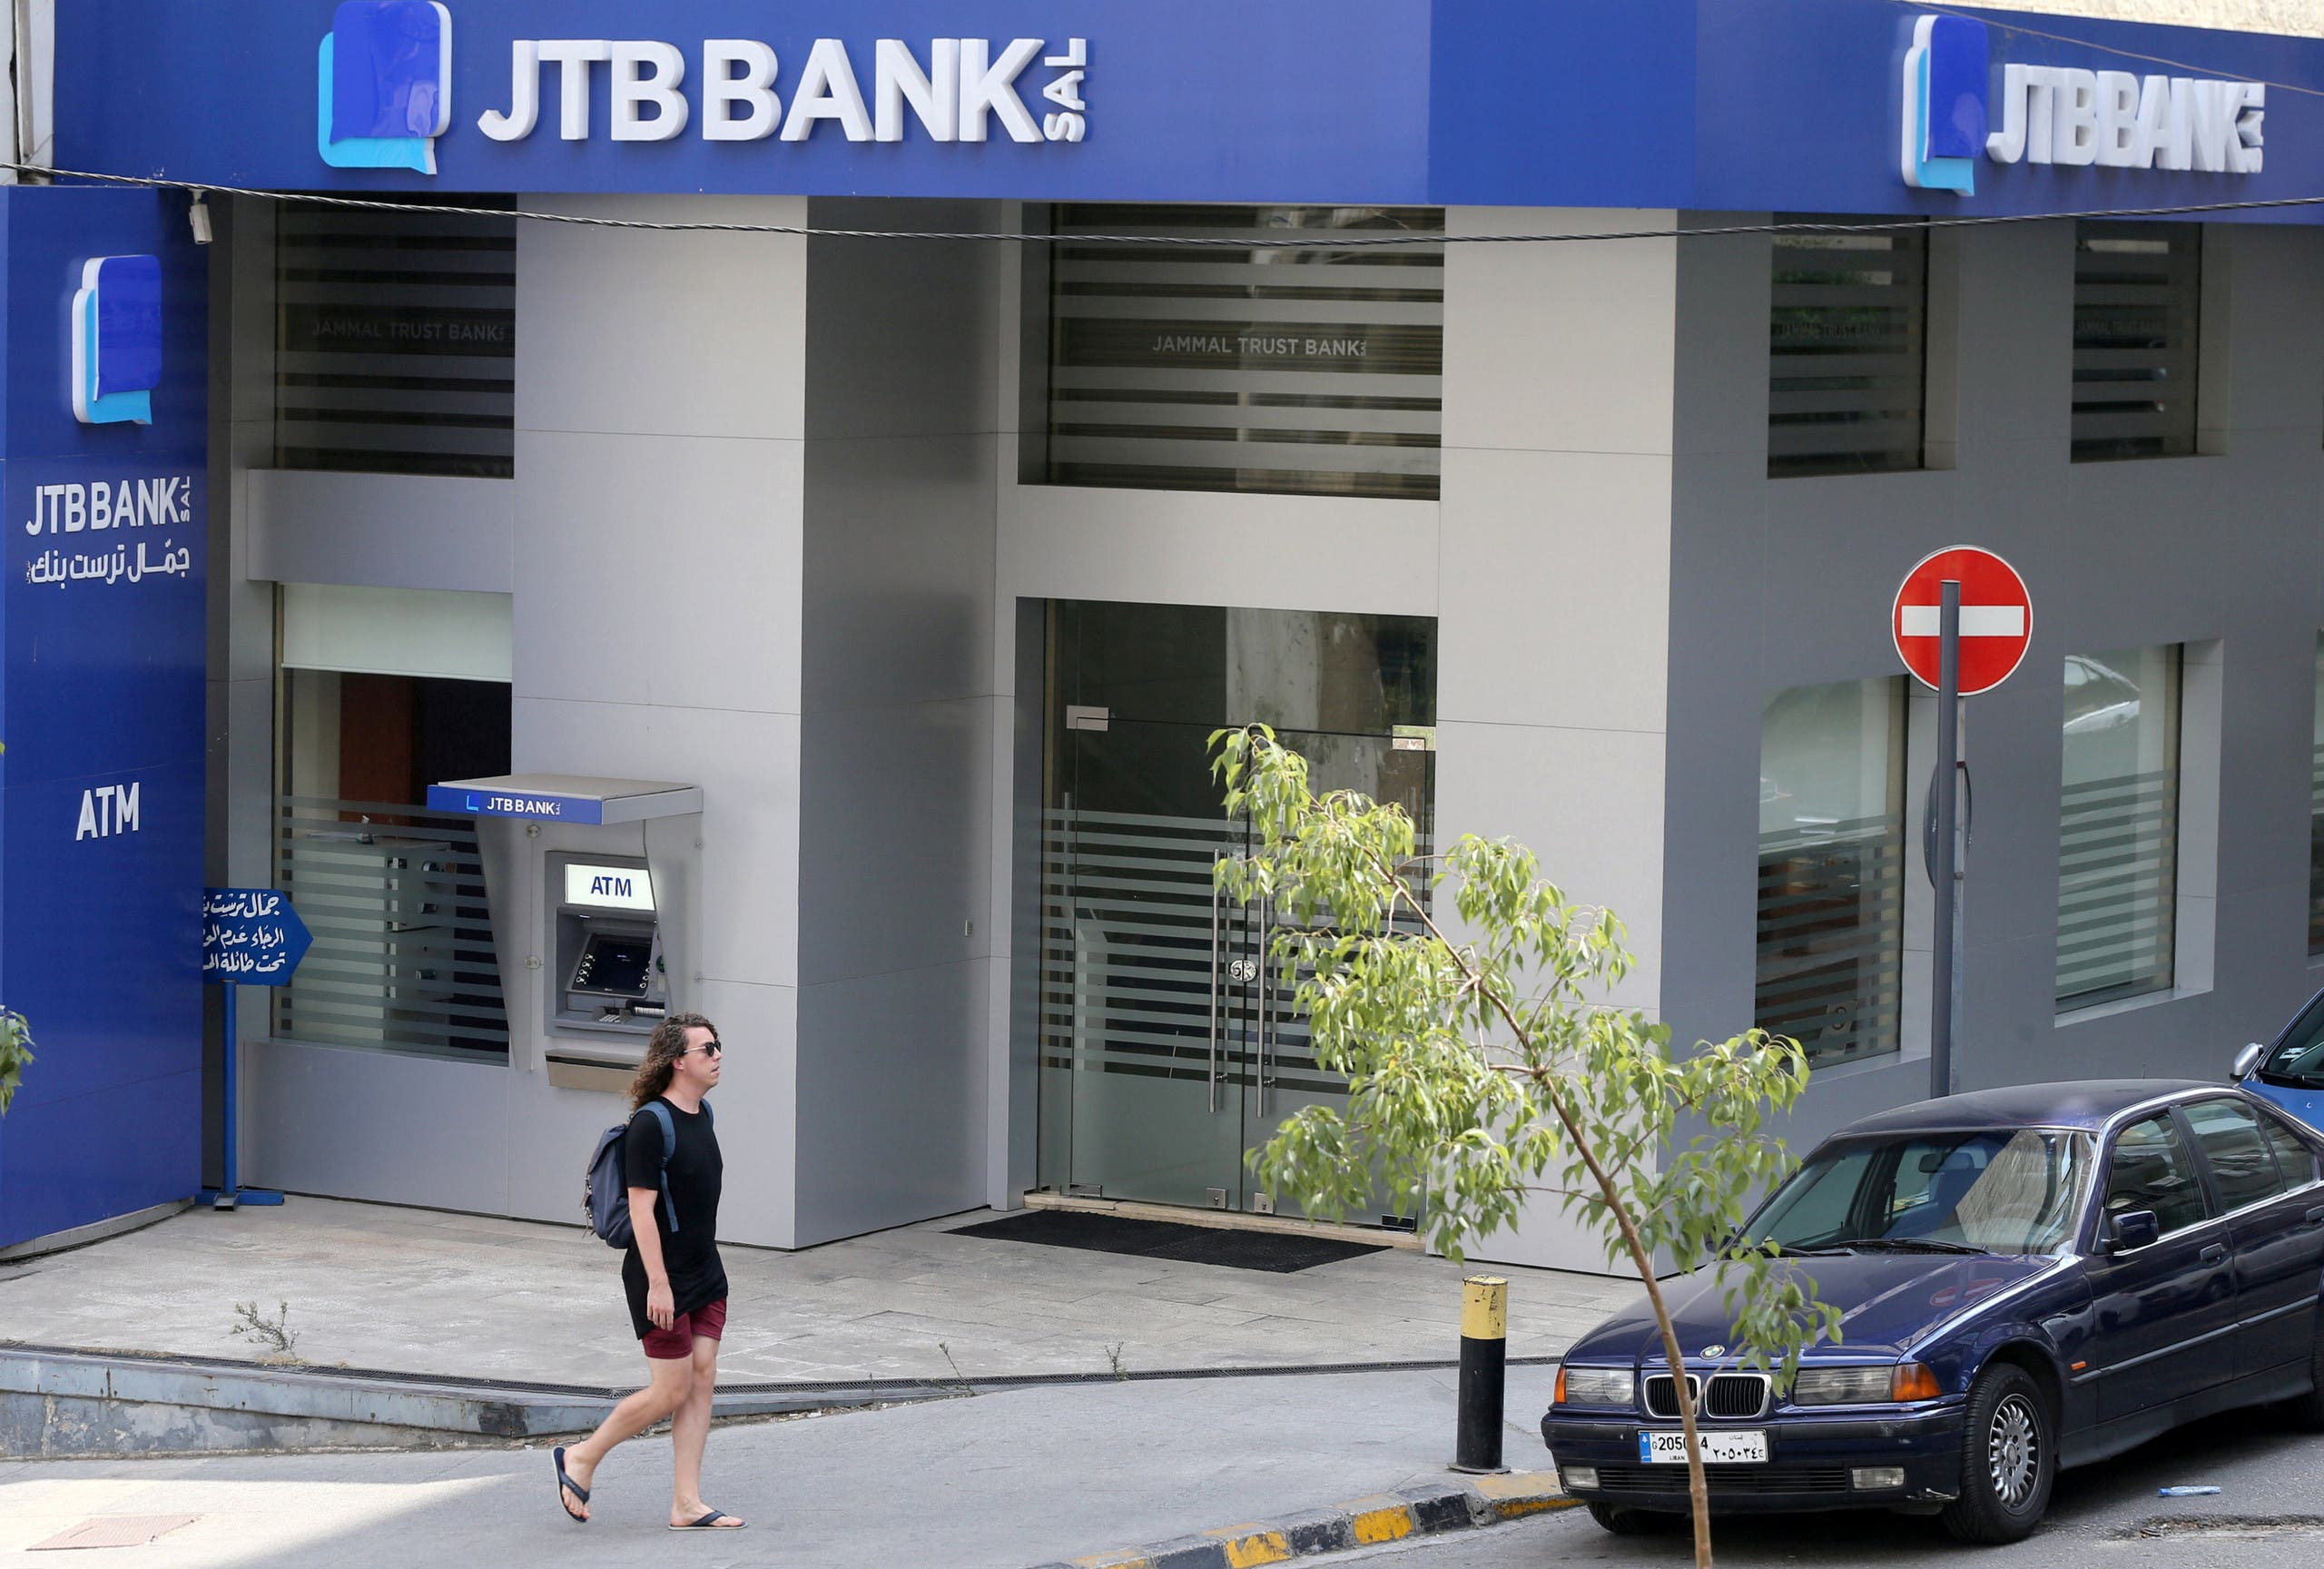 A pedestrian walks past Jammal Trust Bank (JTB) branch in Beirut, Lebanon. (Reuters)